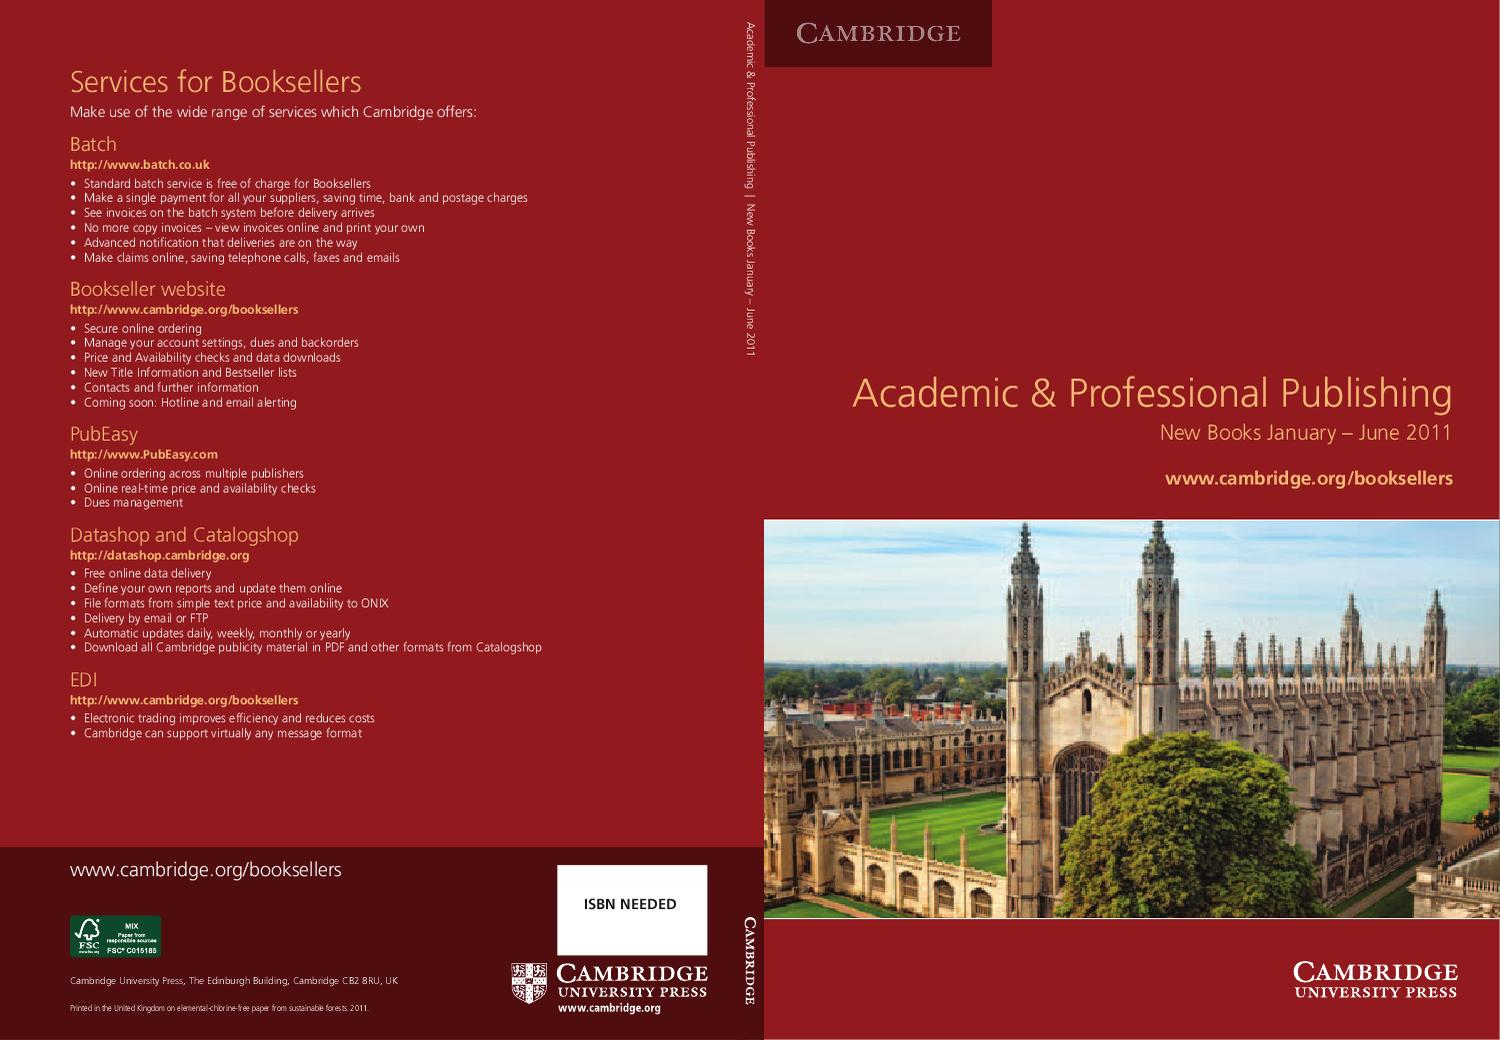 New Books January June By Cambridge University Press Issuu - Invoice maker free download rocco online store